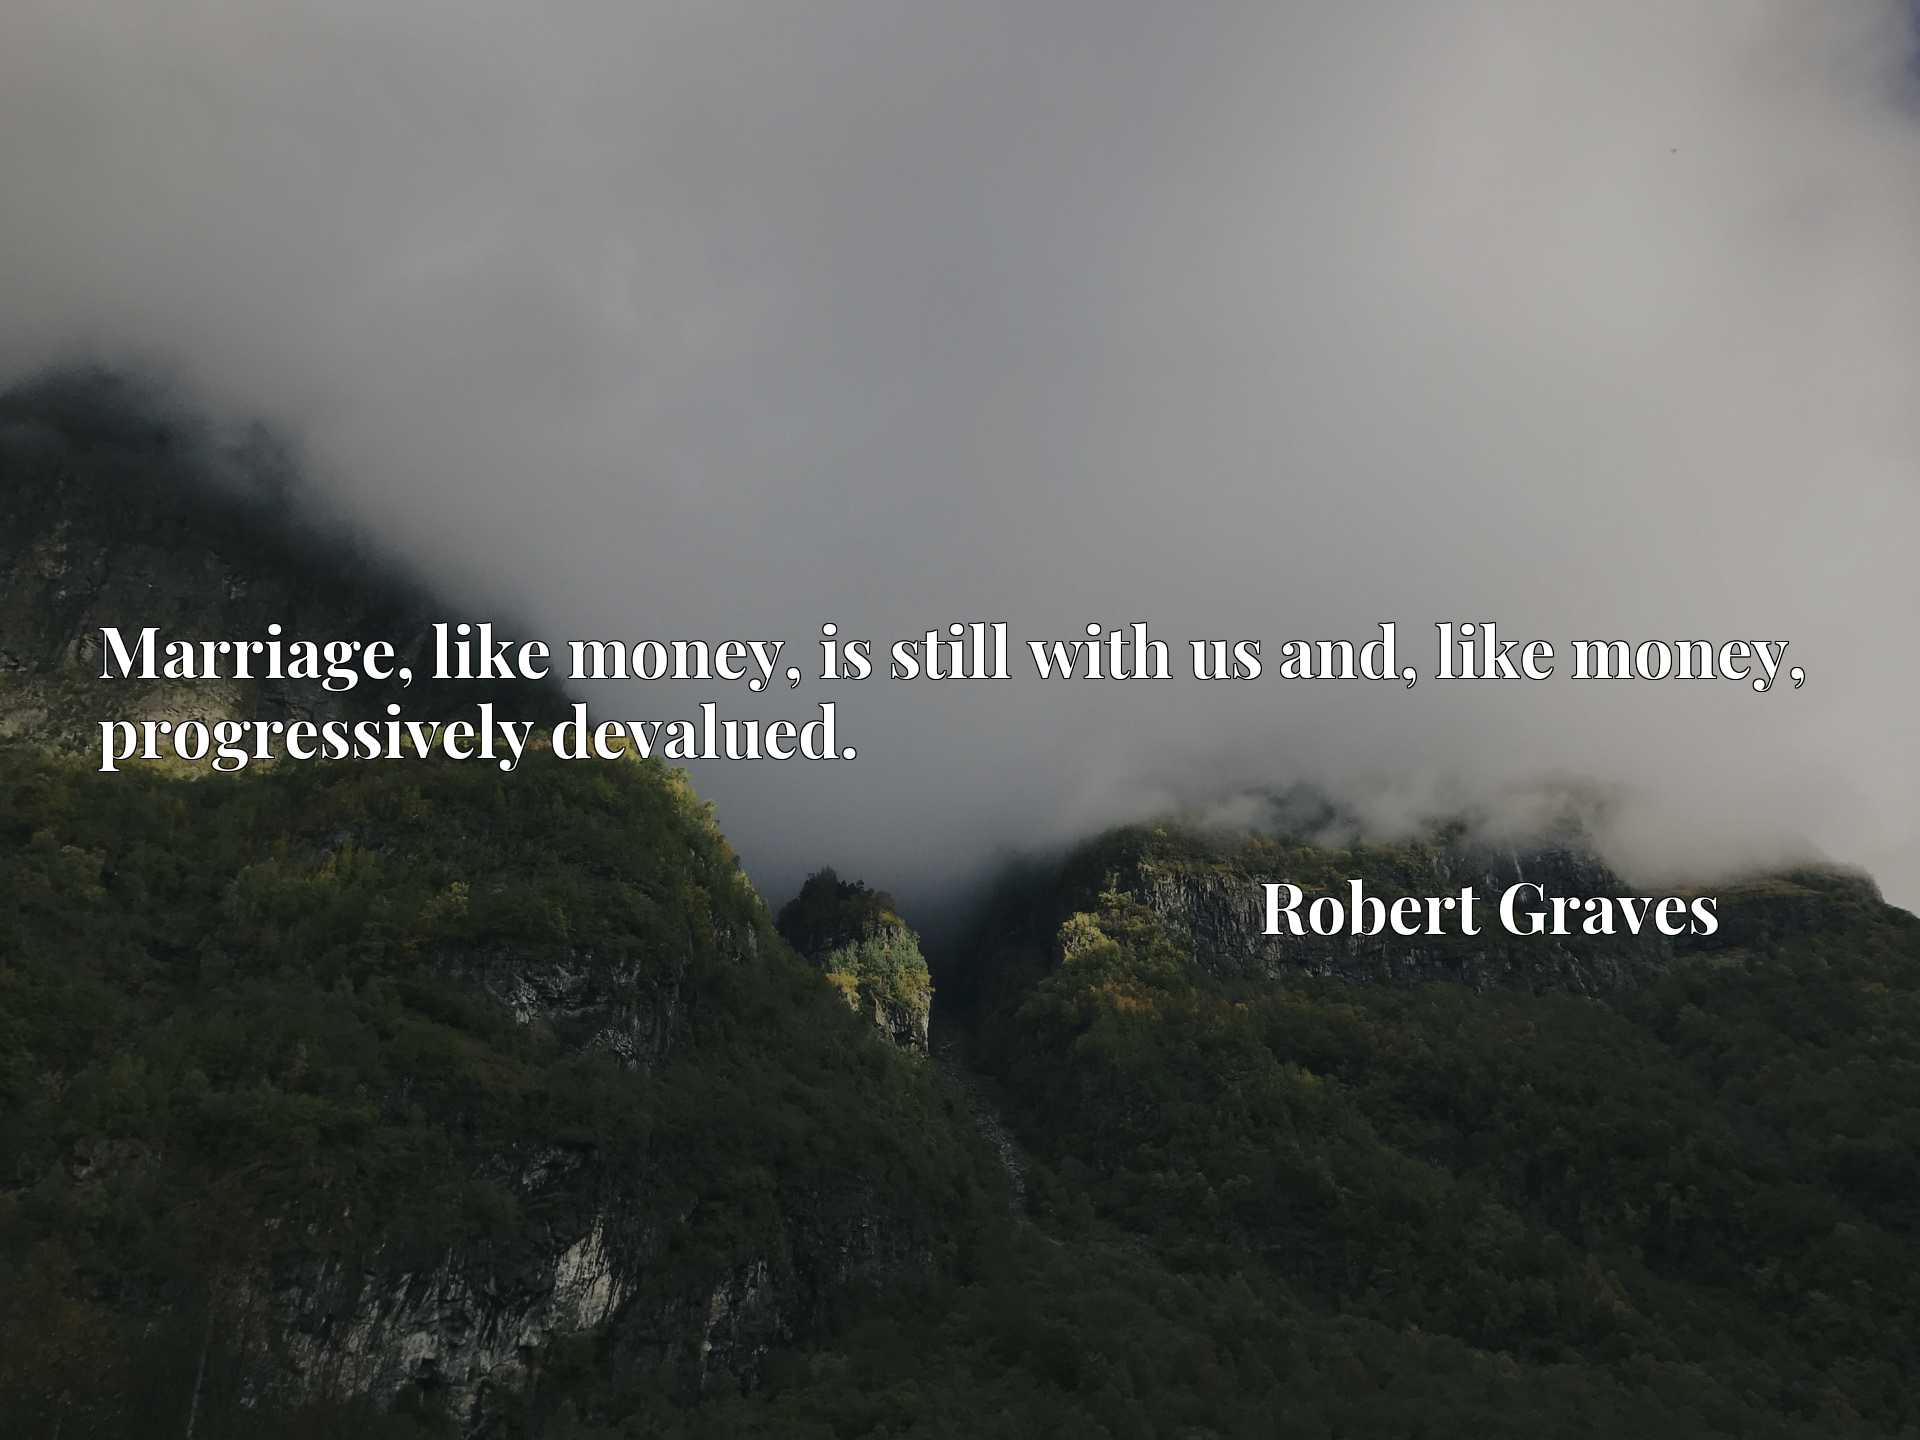 Quote Picture :Marriage, like money, is still with us and, like money, progressively devalued.